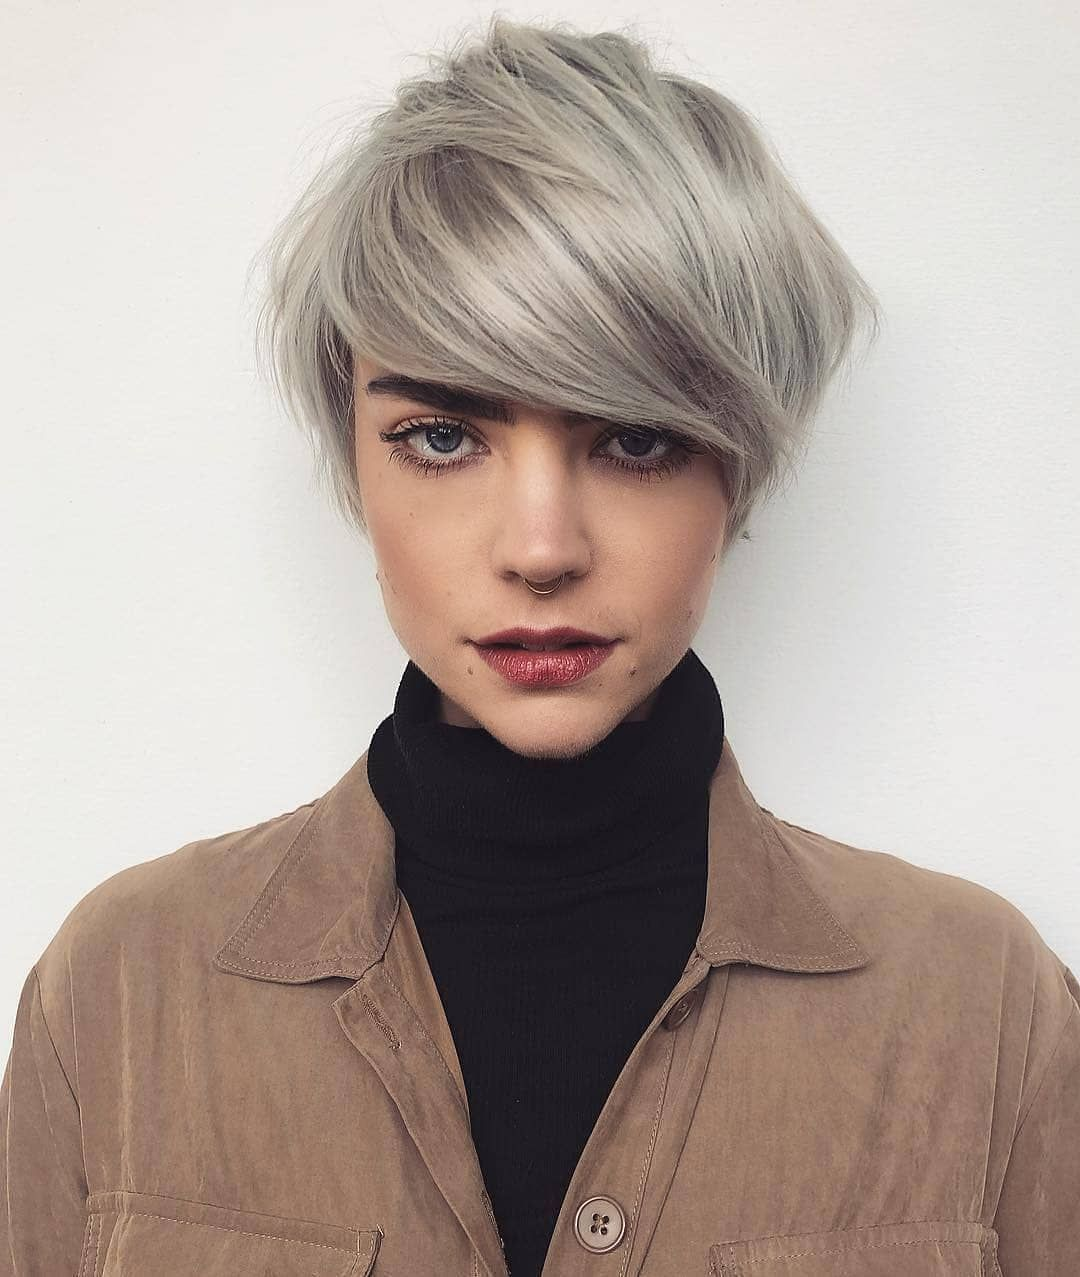 10 Trendy Short Hairstyles for Straight Hair Pixie